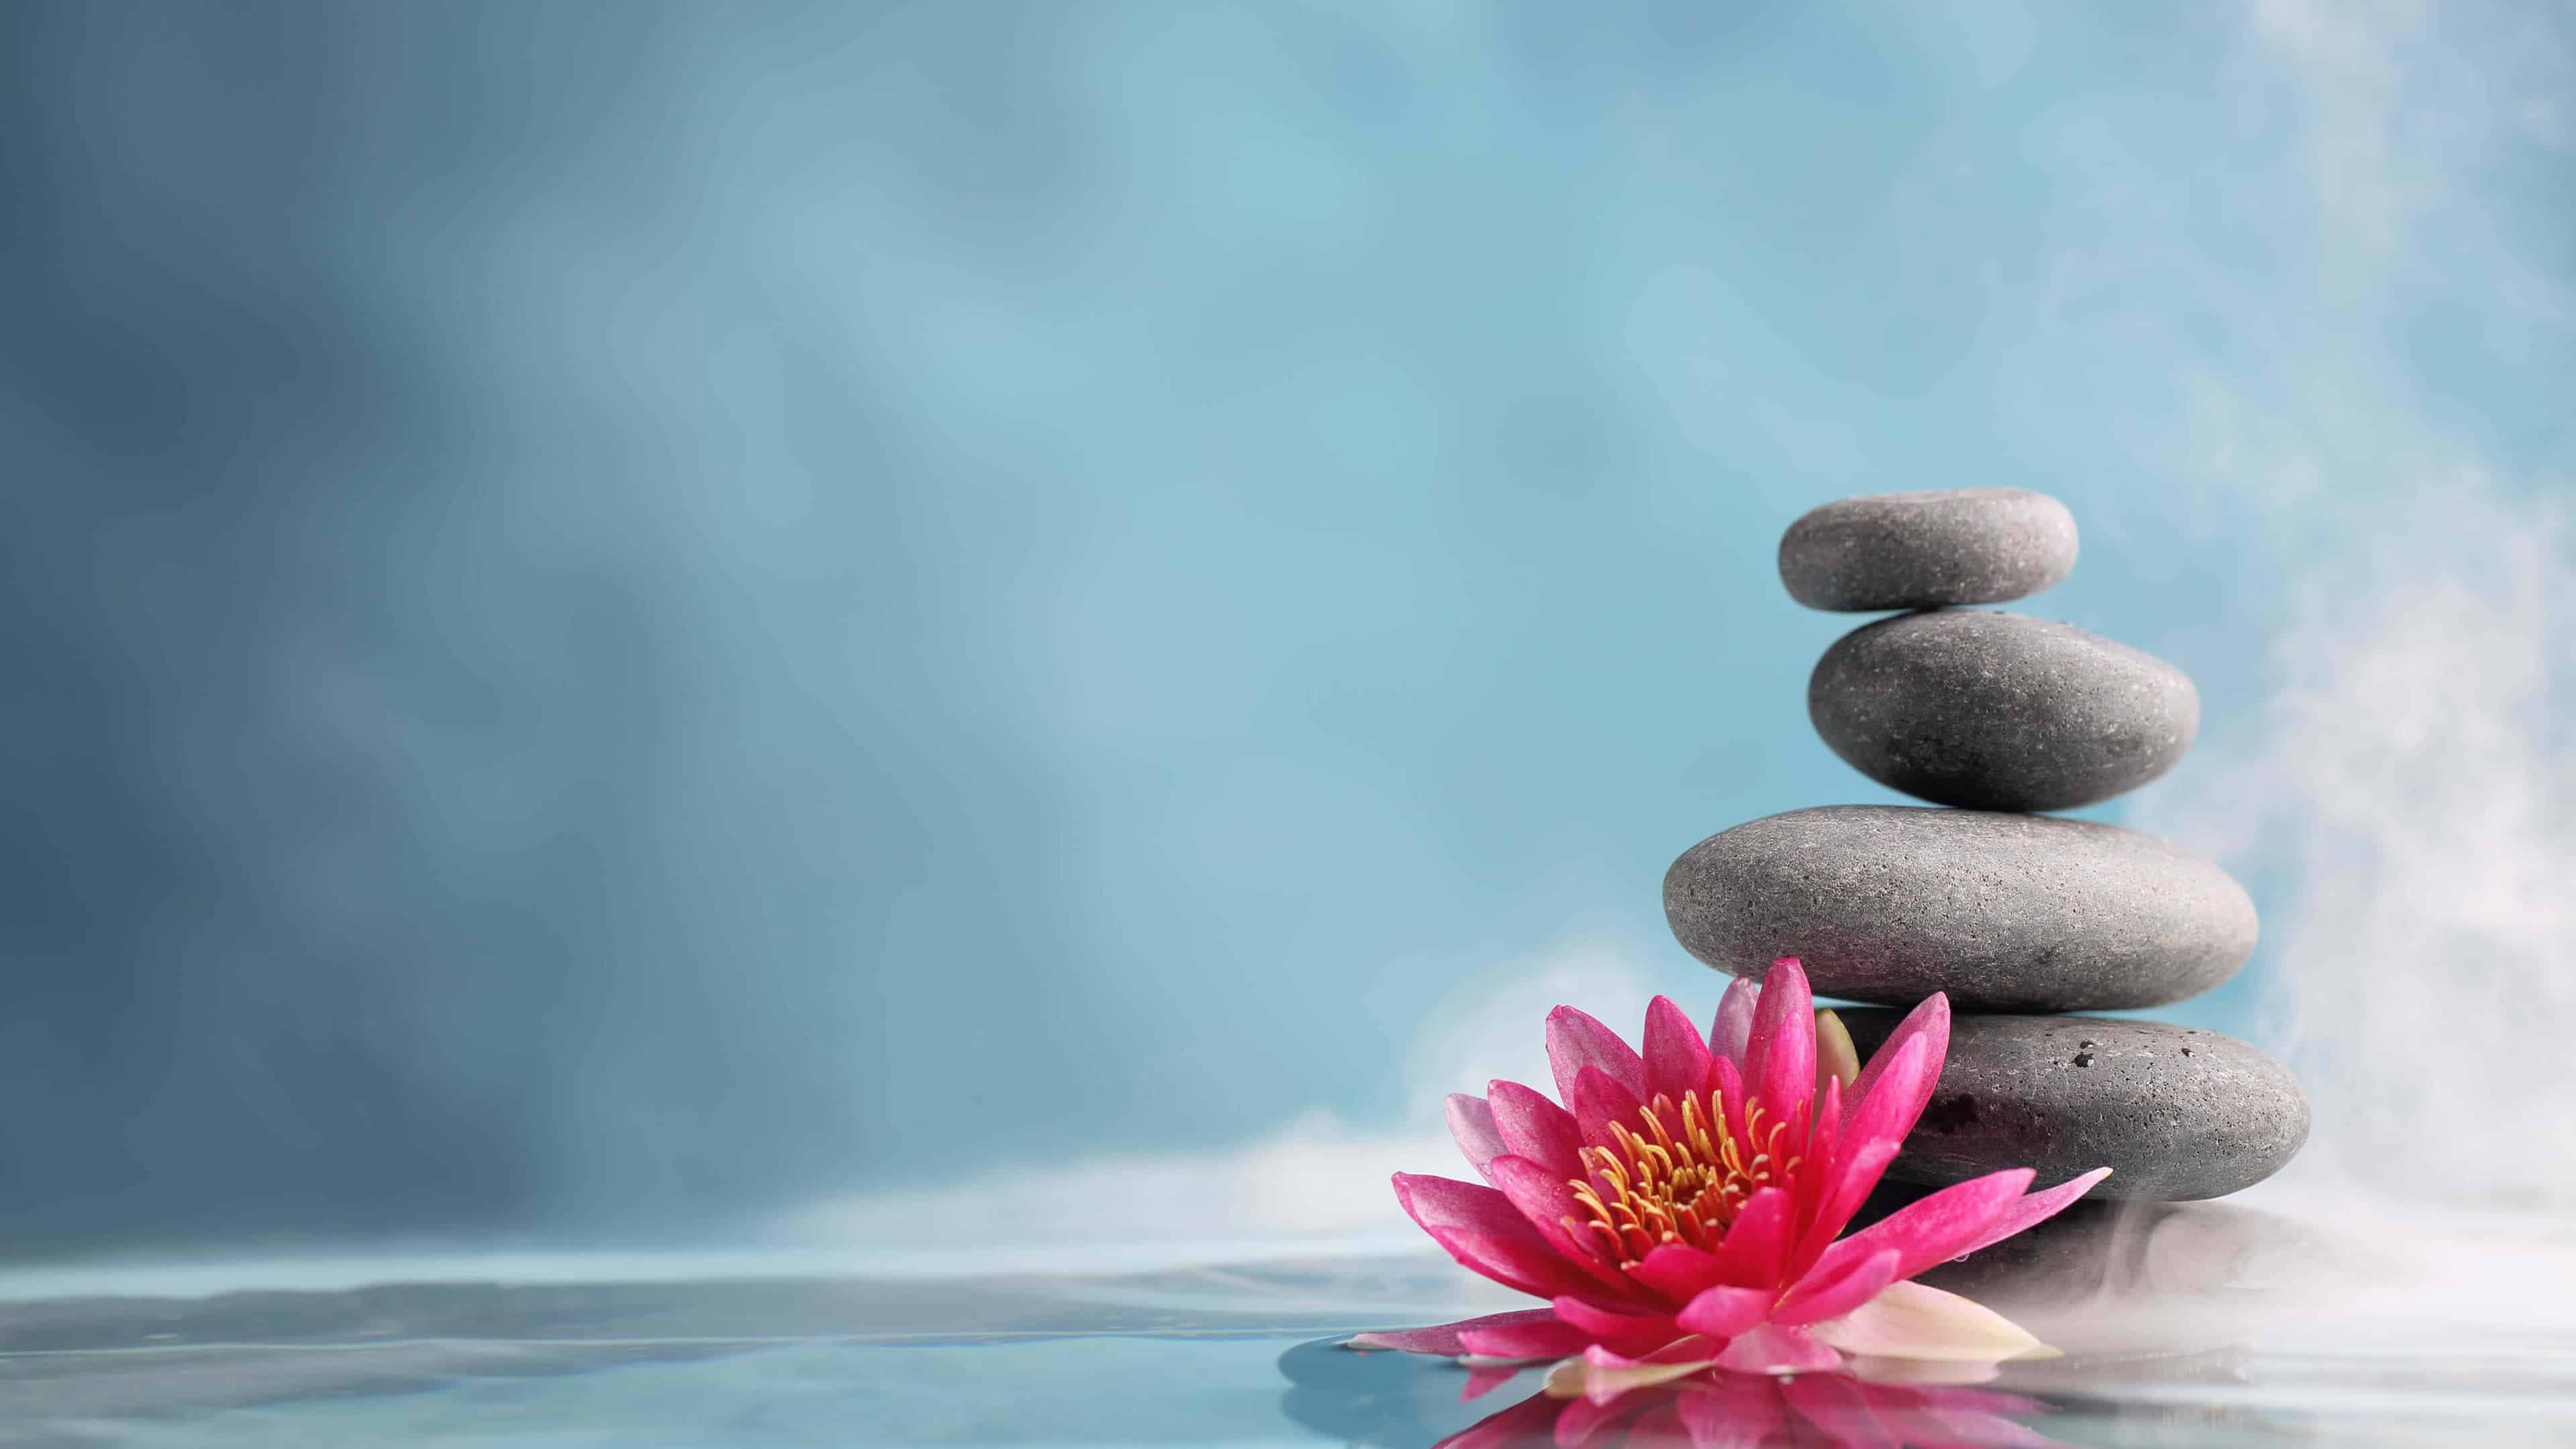 stacked massage stones and lotus uhd 4k wallpaper